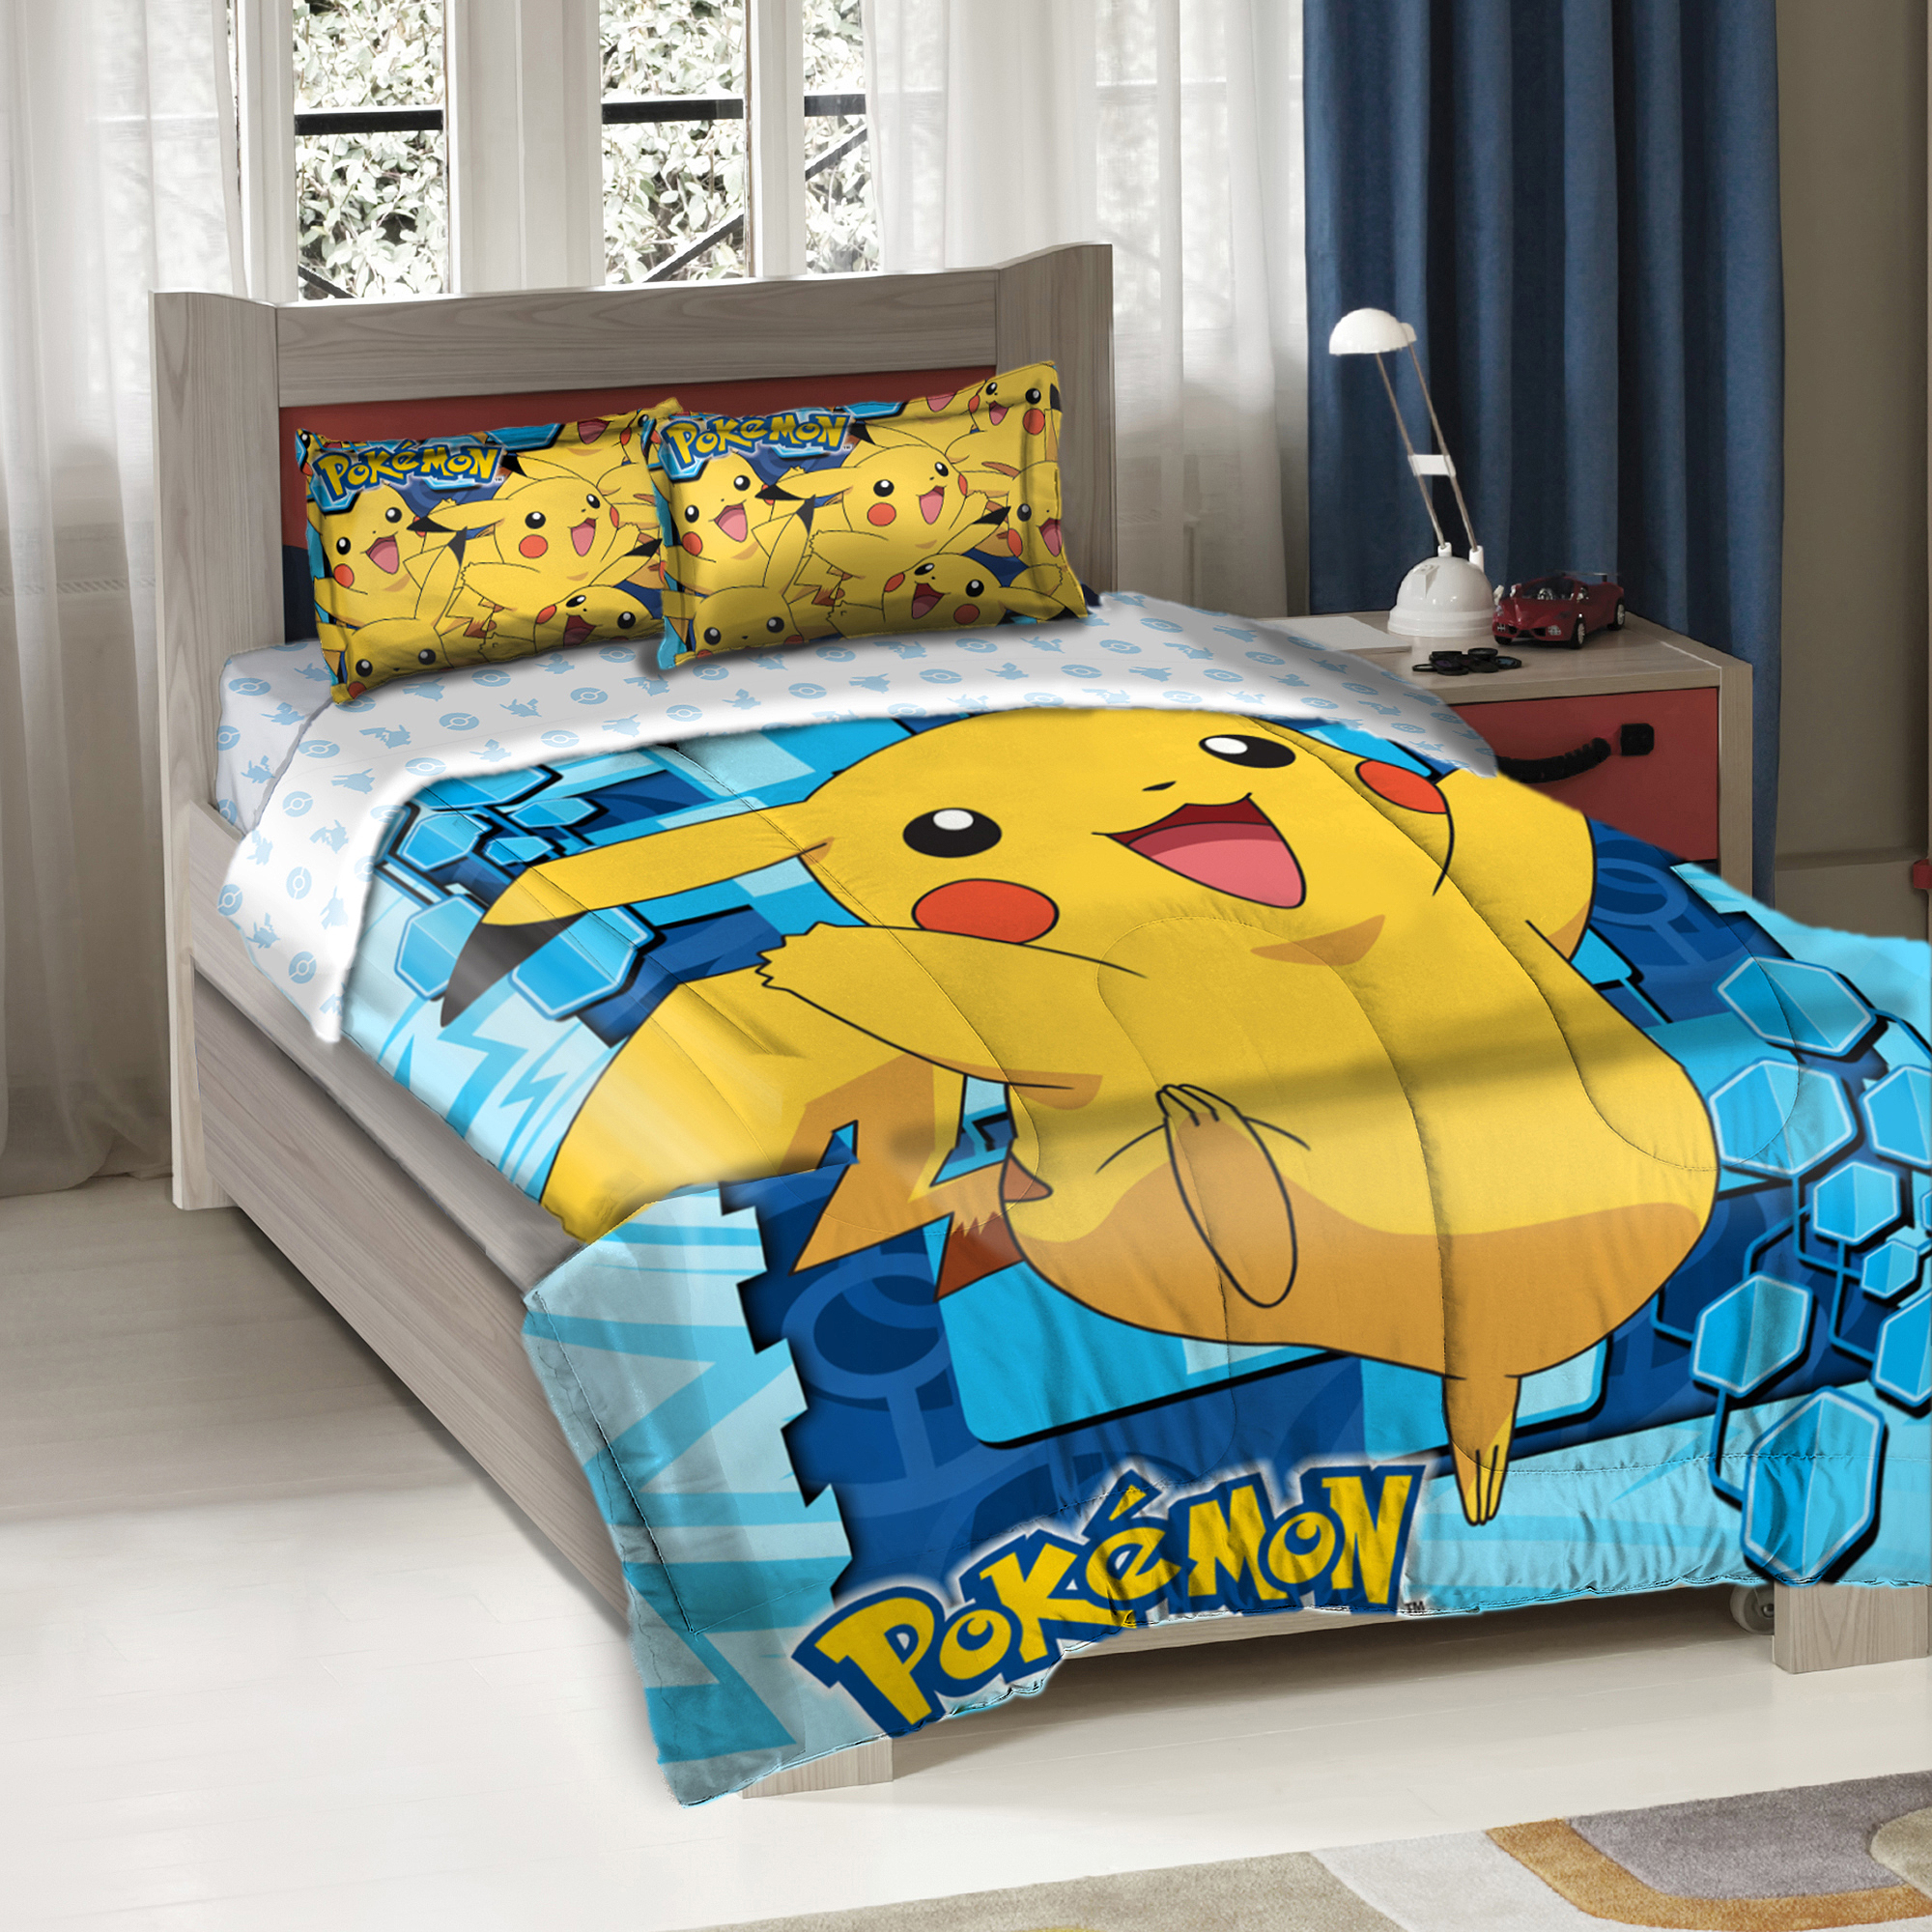 duvet sets kidsu0027 bedding